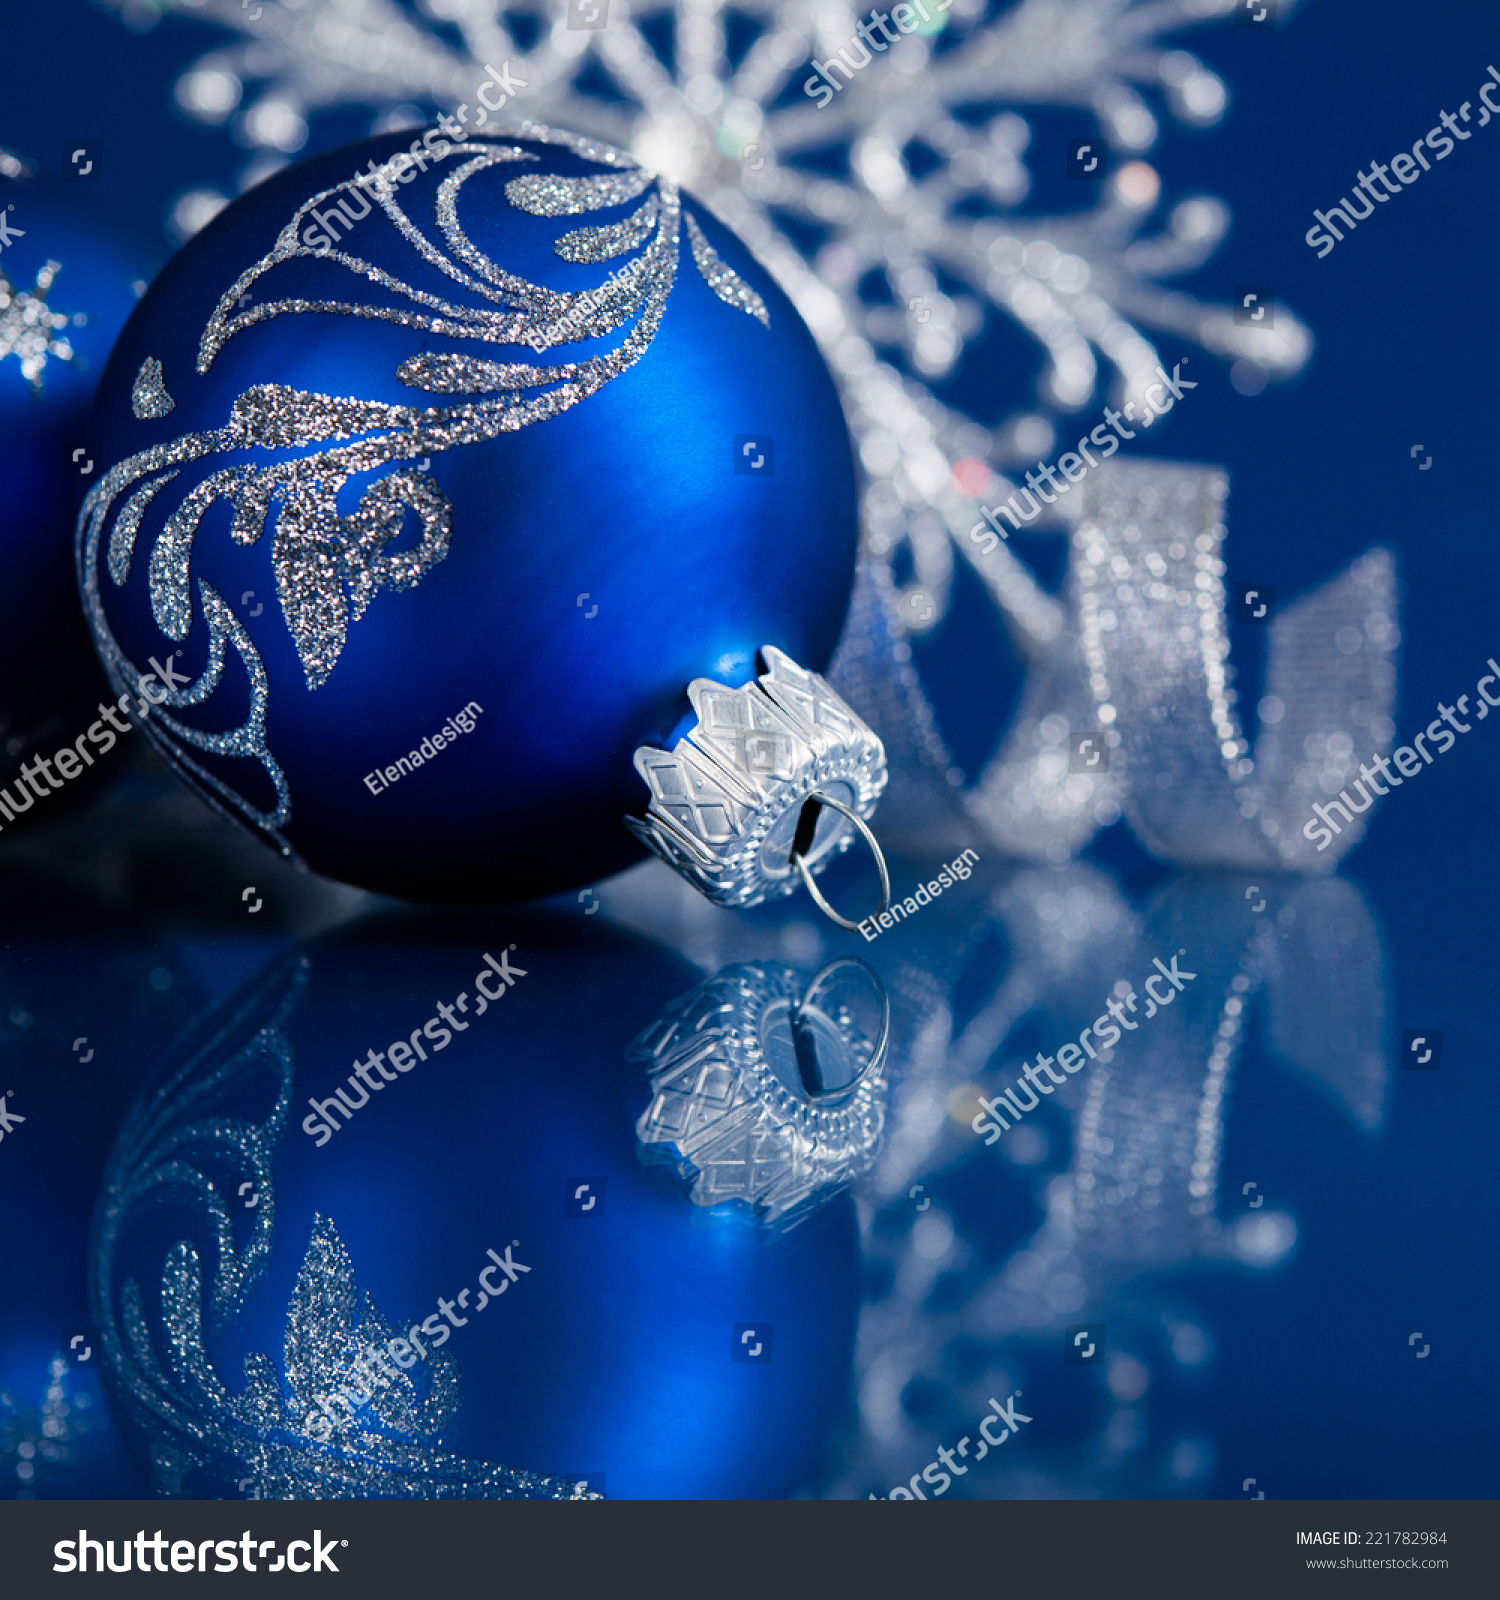 Blue Silver Christmas Ornaments On Dark Stock Photo 221782984 ...